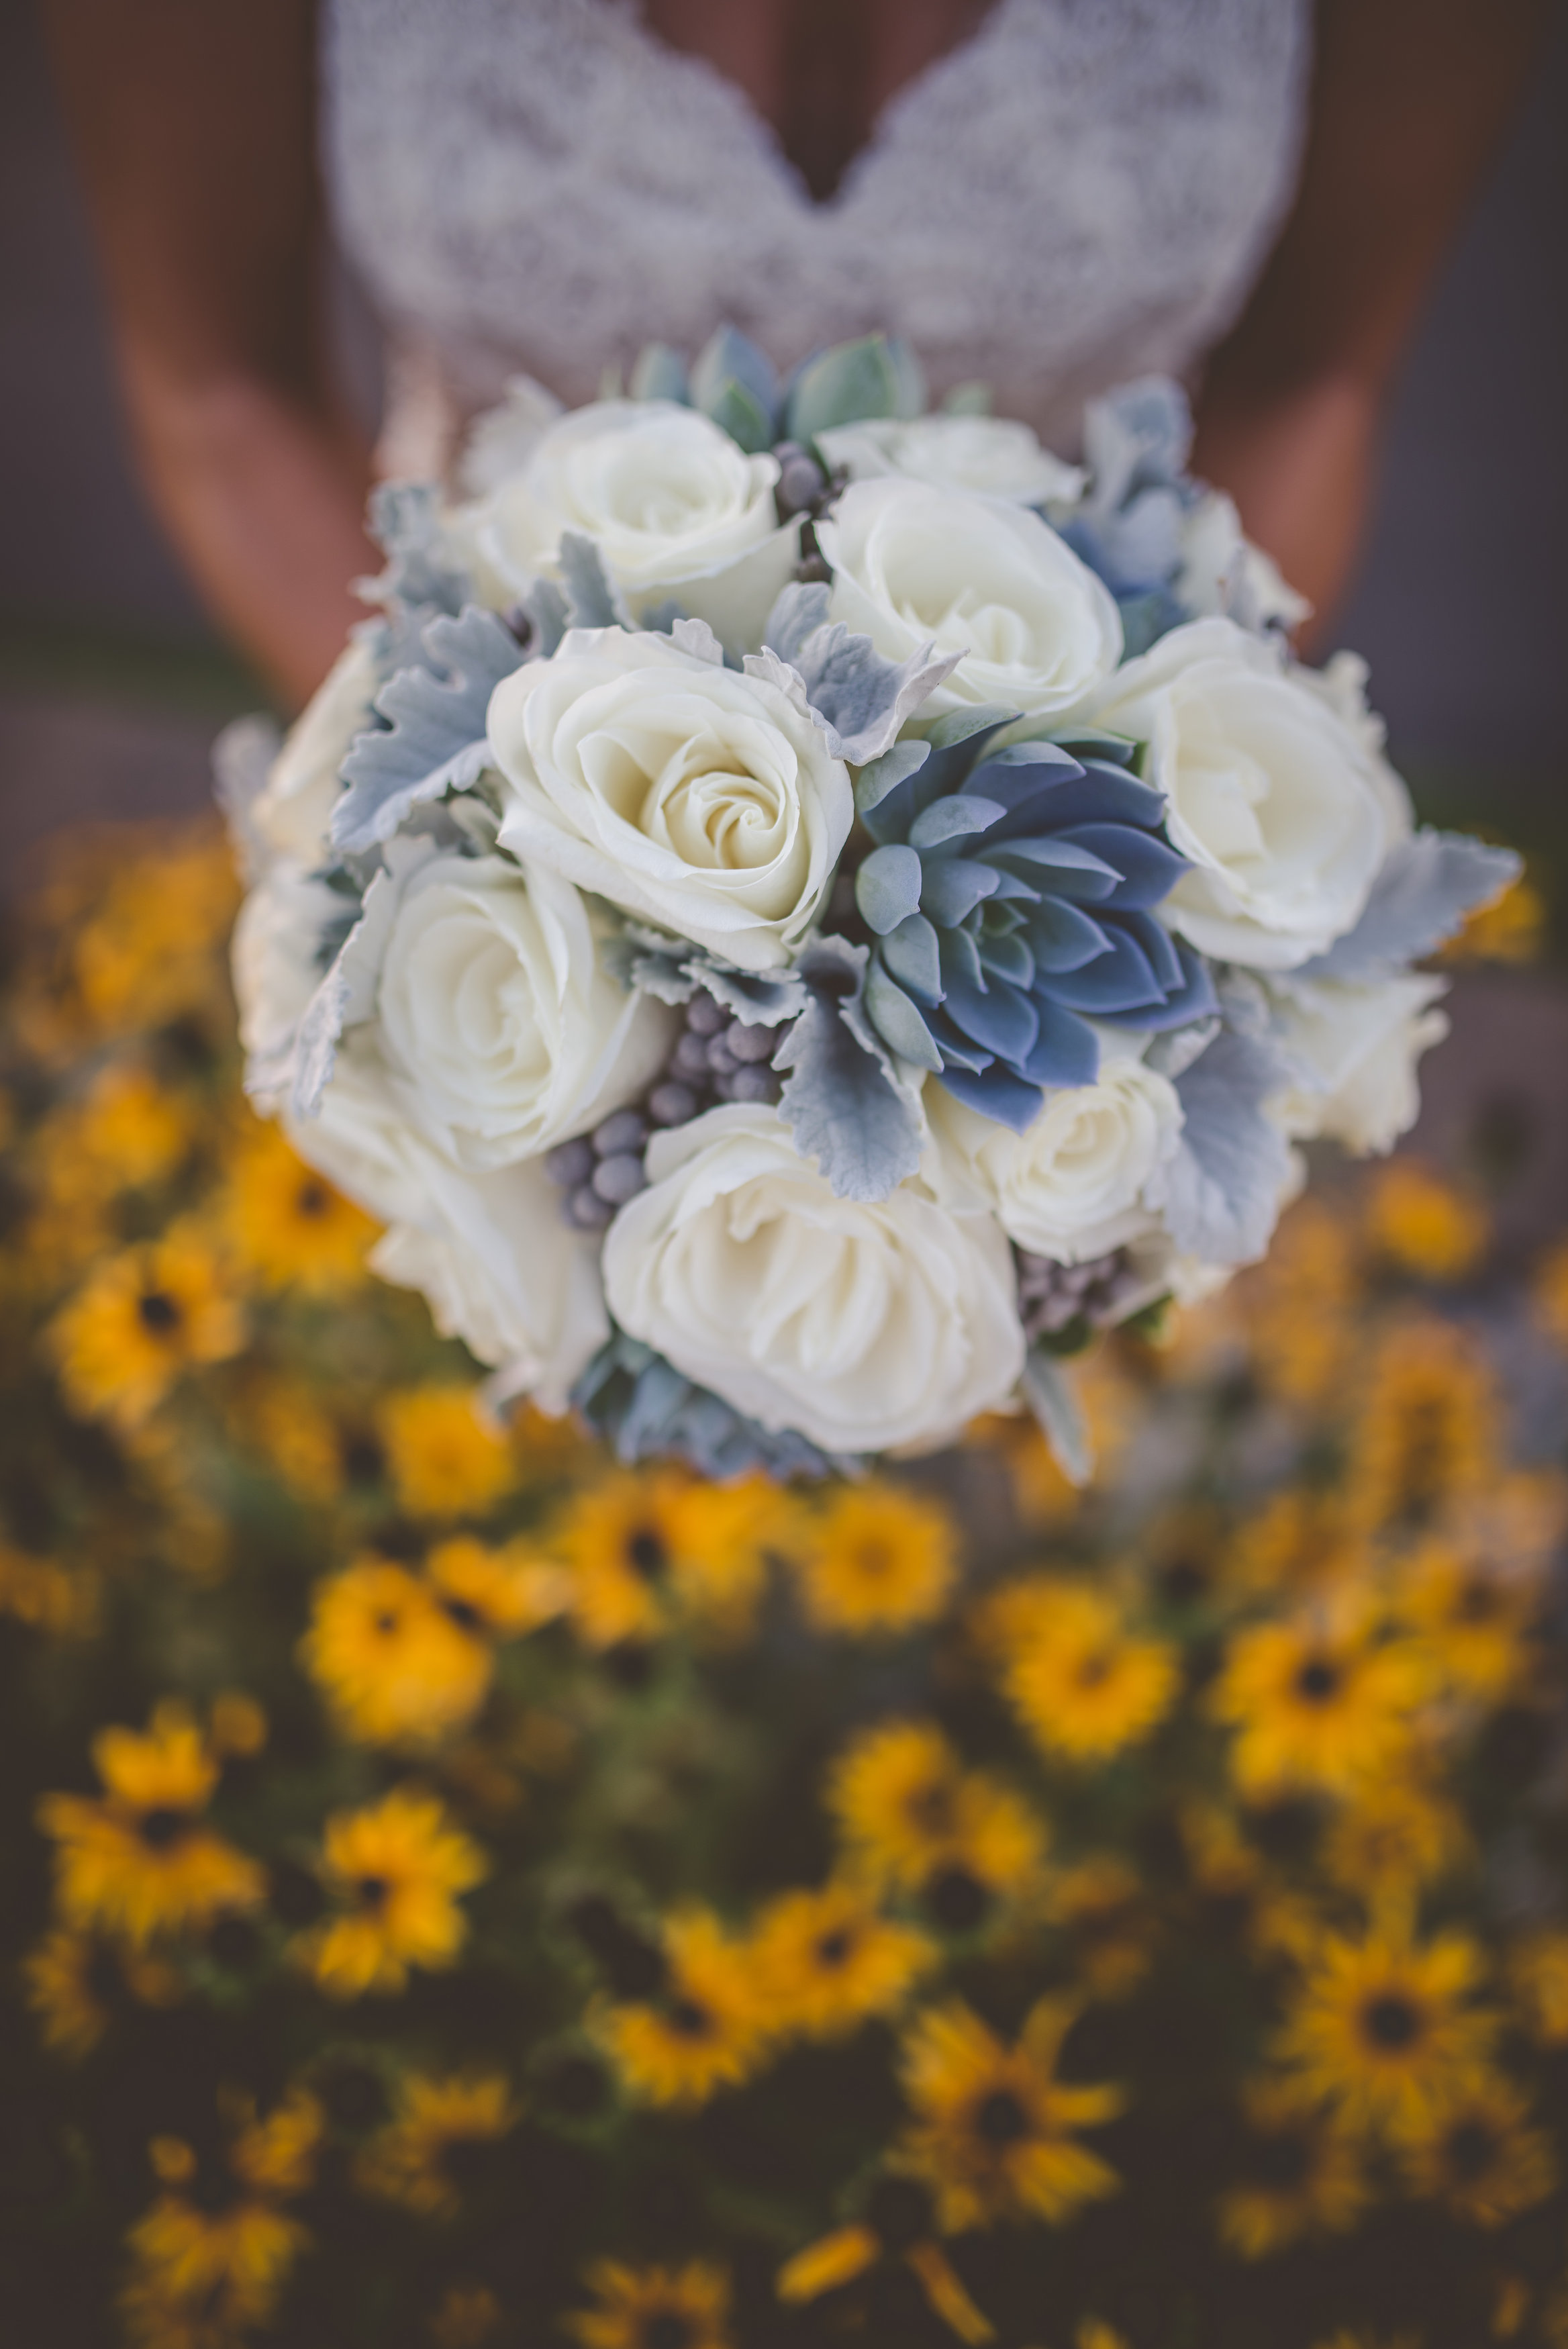 Rose bouquet with monochromatic flowers